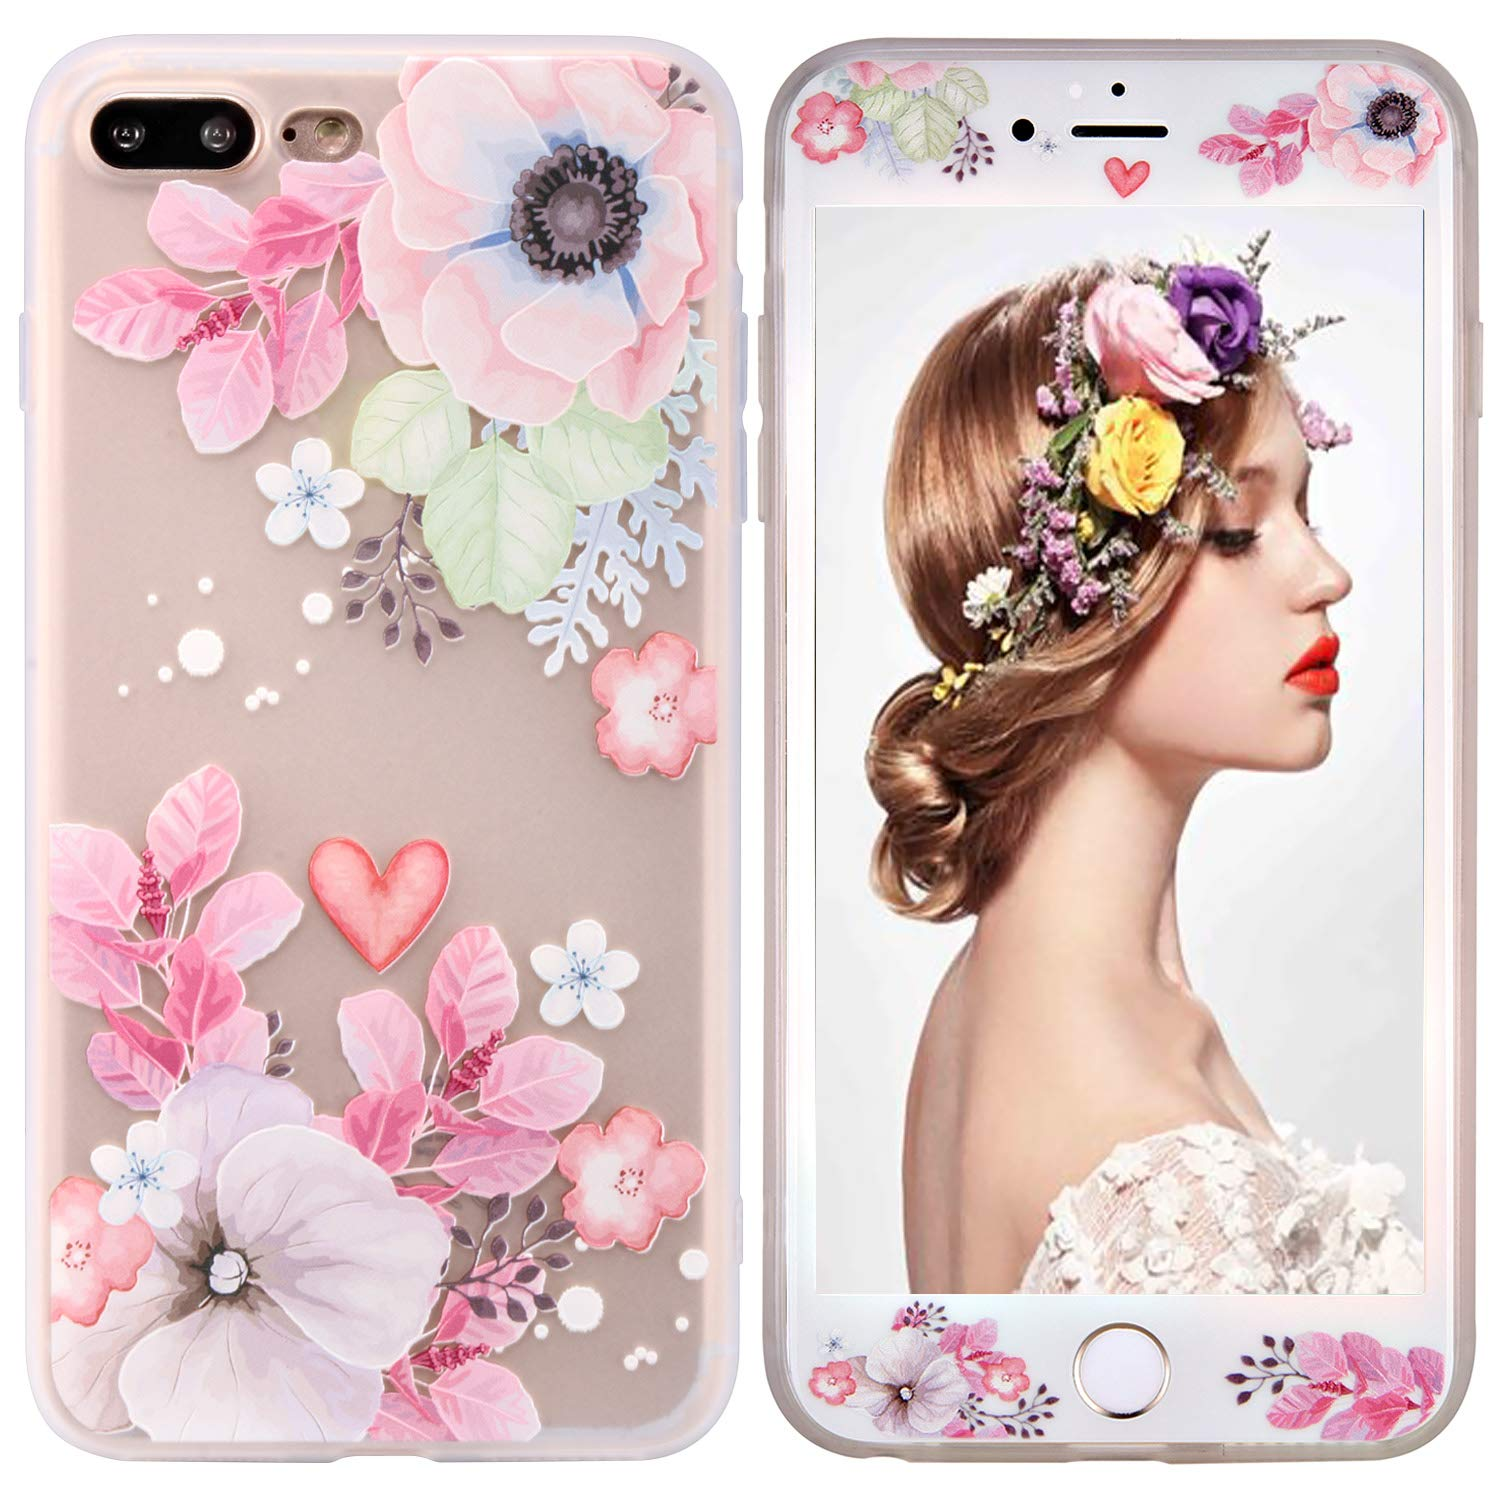 beautyshow Phone Case for iPhone 7 plus/8 plus, Floral Flower Printed TPU Soft Apple Protective Case with 9H Hardness Tempered Glass Screen Protector (Love Hibiscus) DIP7PR0014-FBA